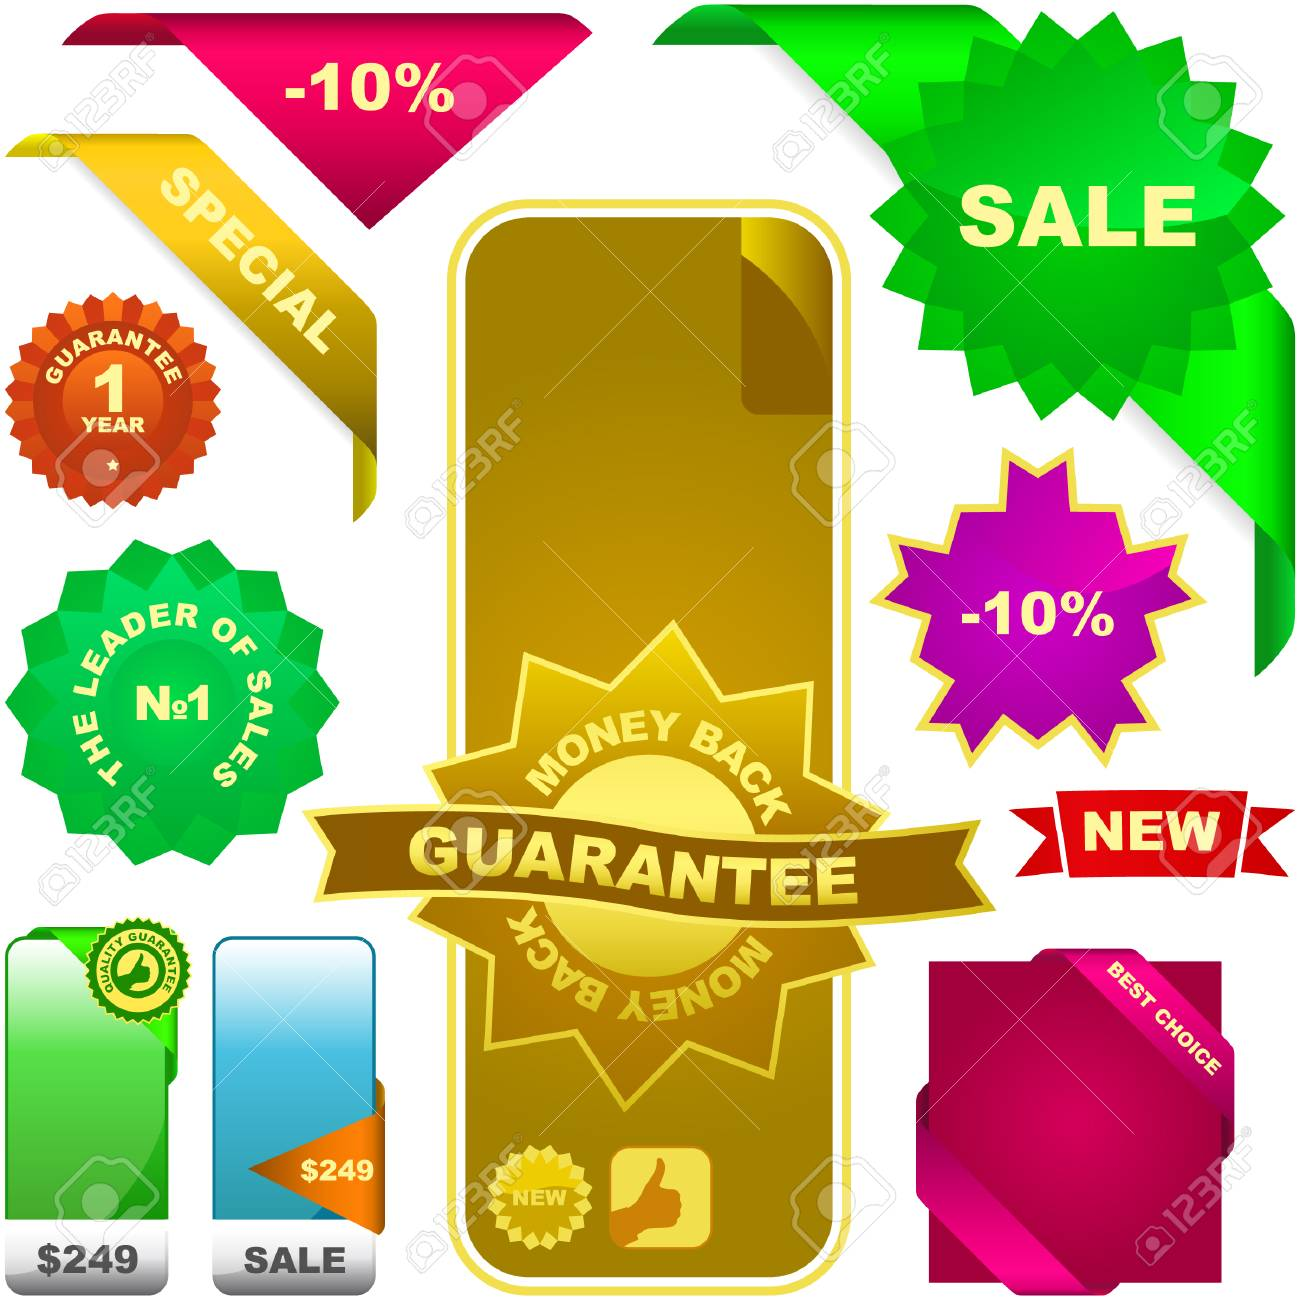 Set of design elements for sale. Stock Vector - 6331737